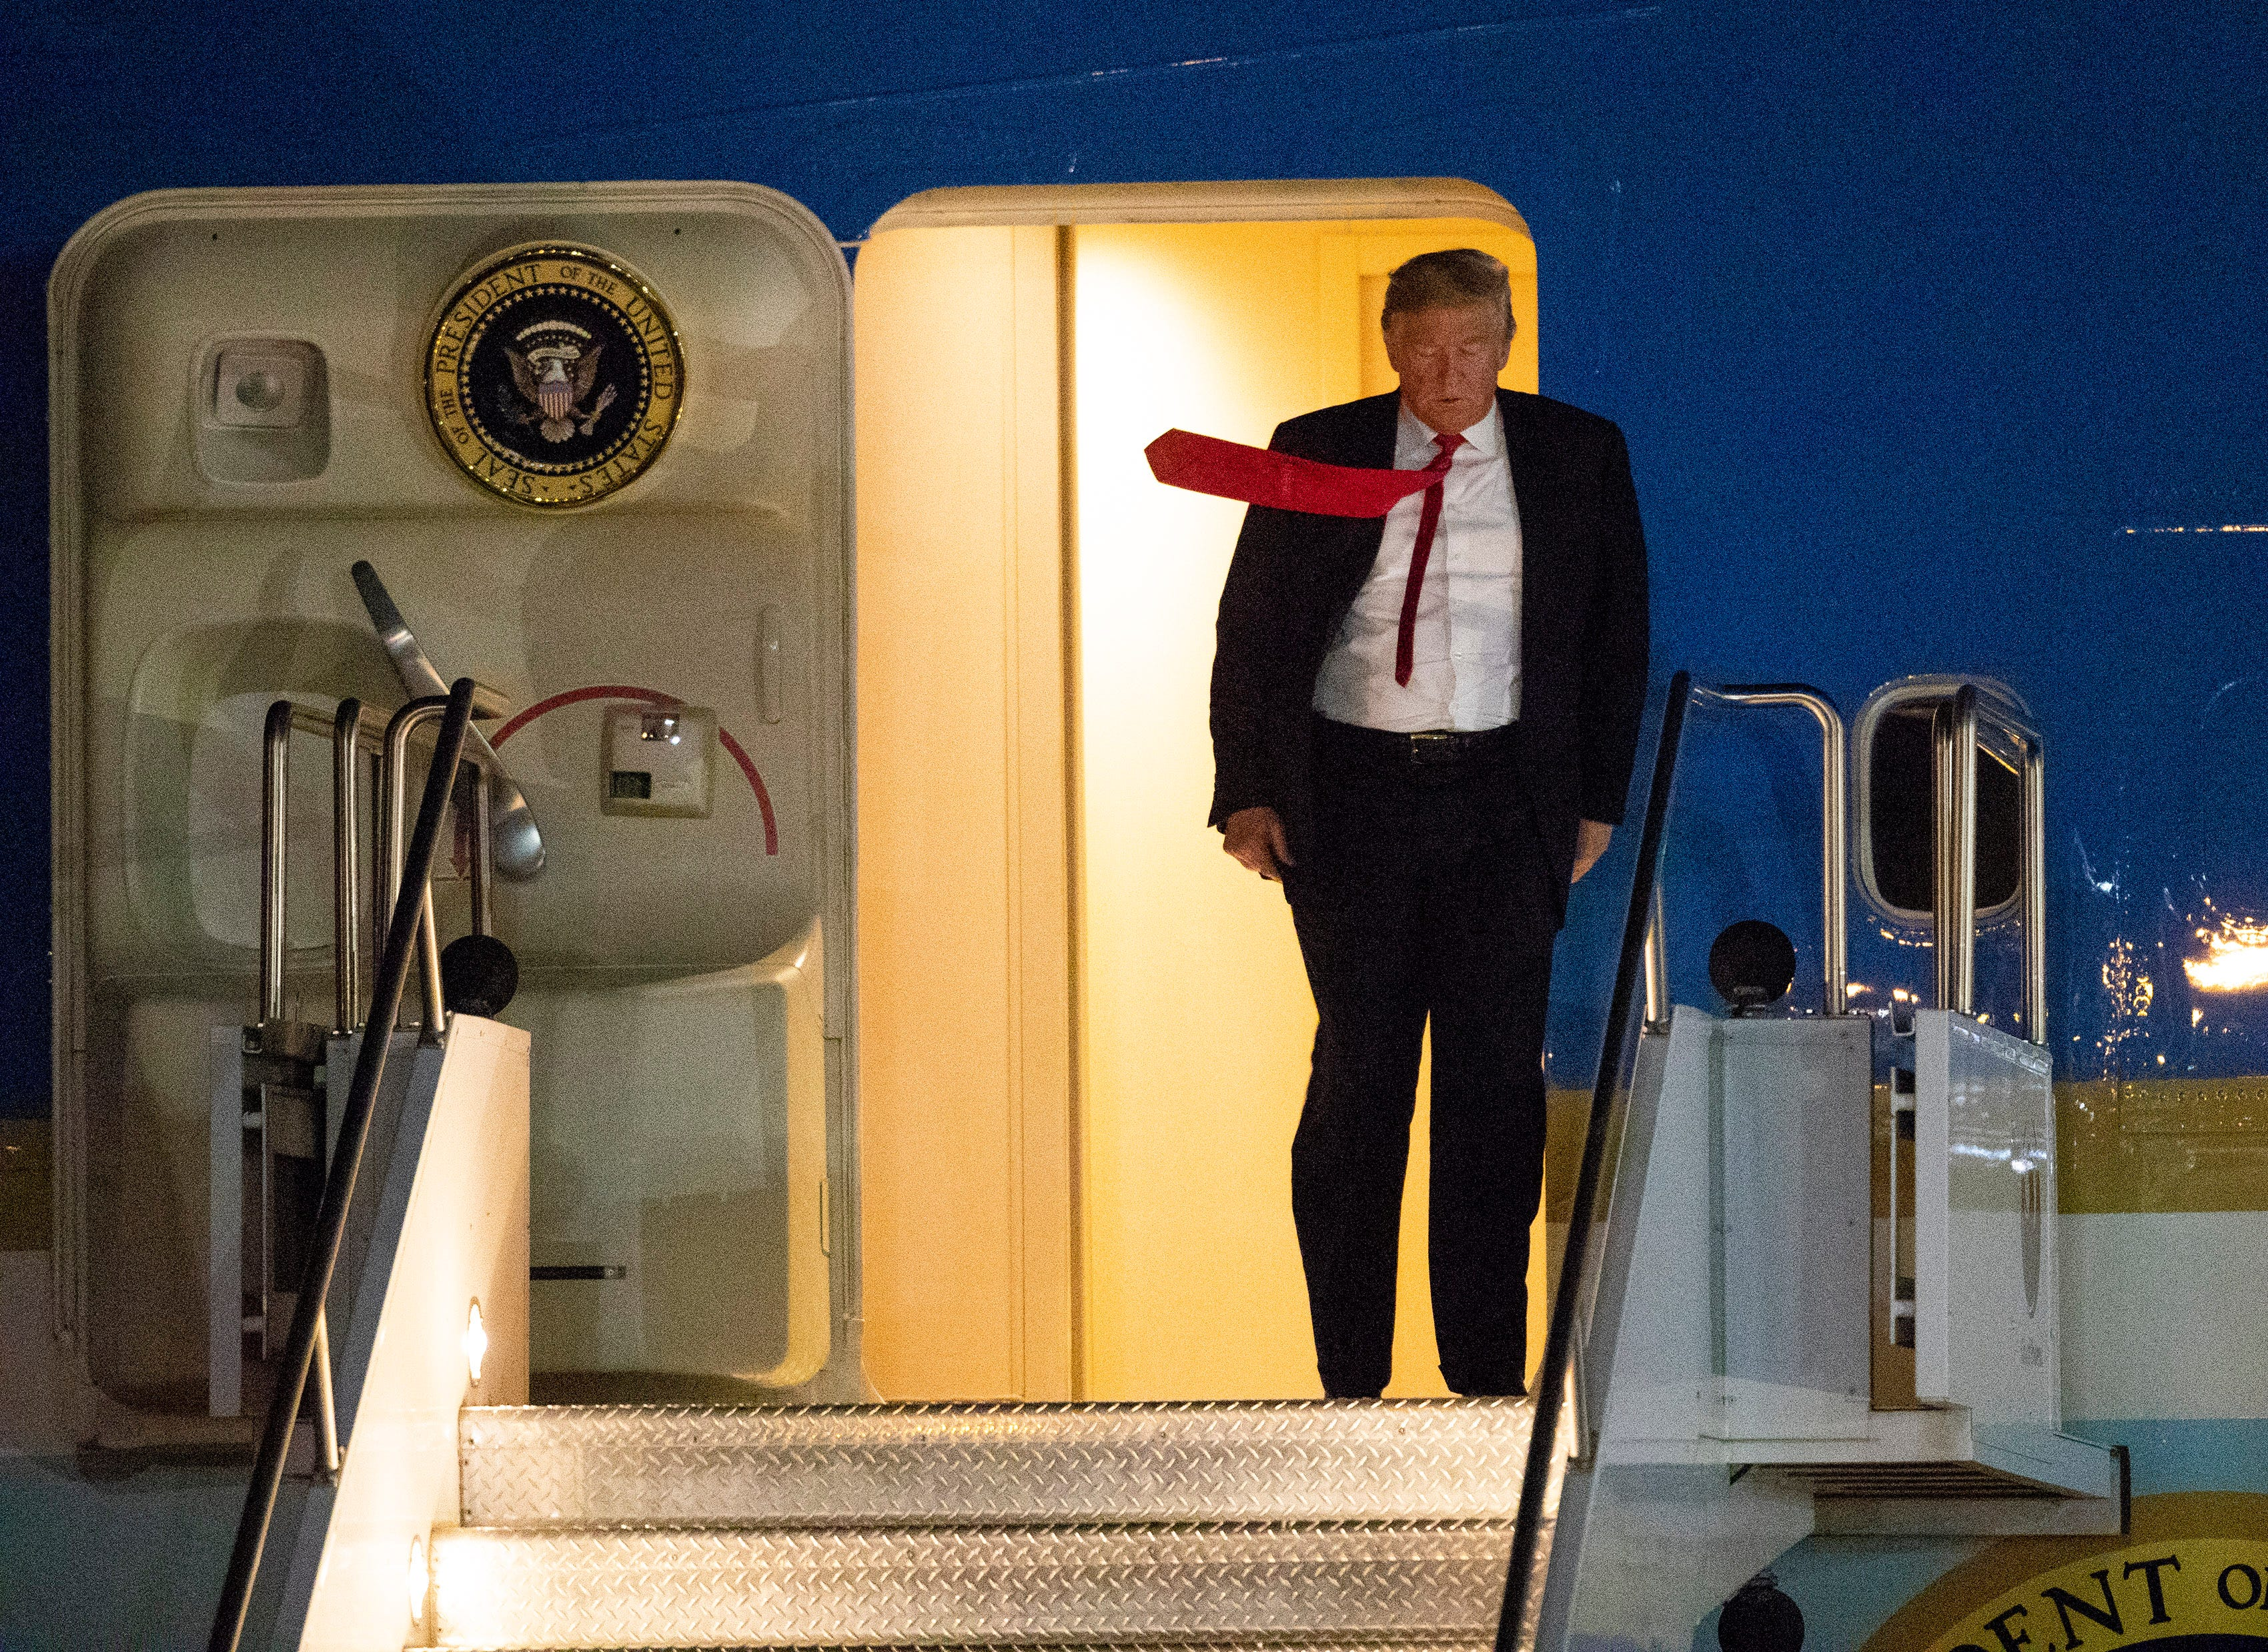 U.S. presidents who have landed at Phoenix Sky Harbor Airport